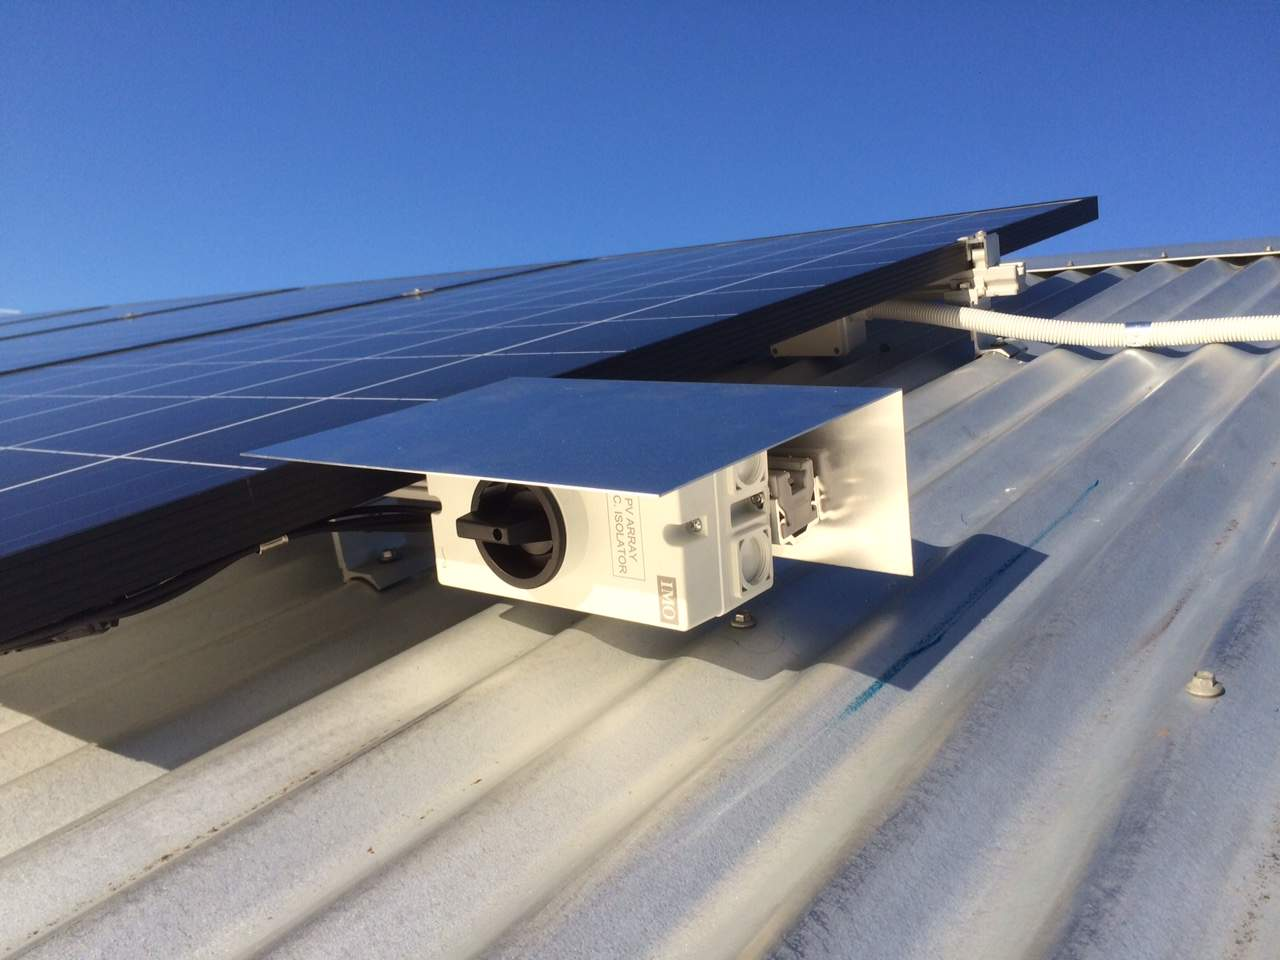 solar isolator on the roof